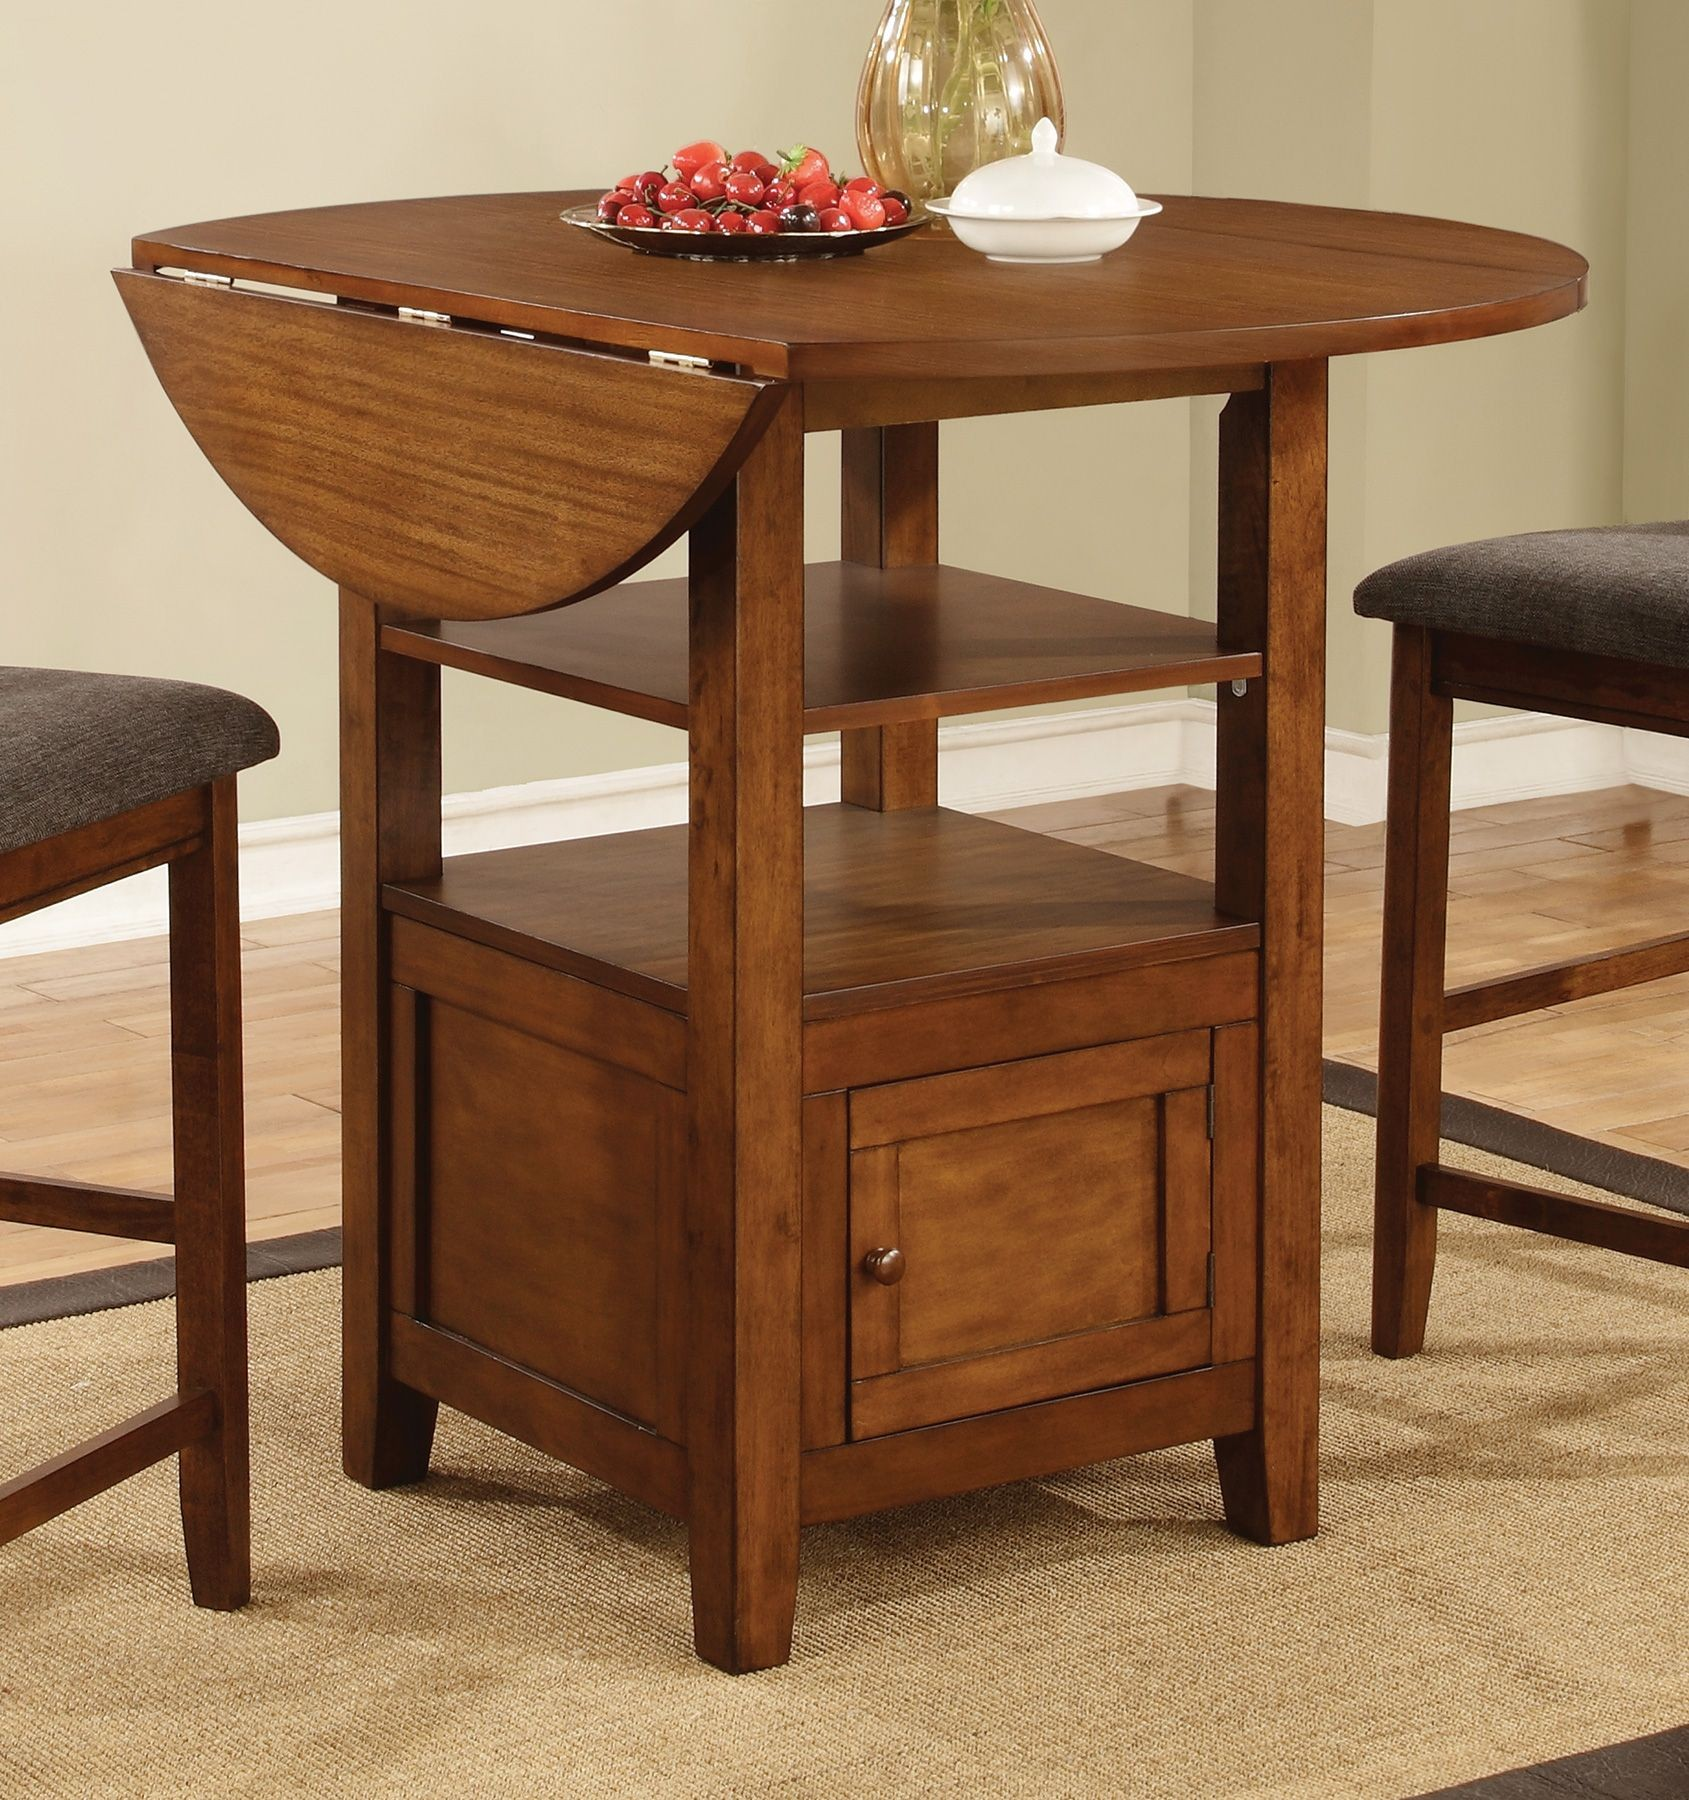 Stockton warm brown drop leaf round counter height dining for Round drop leaf dining table